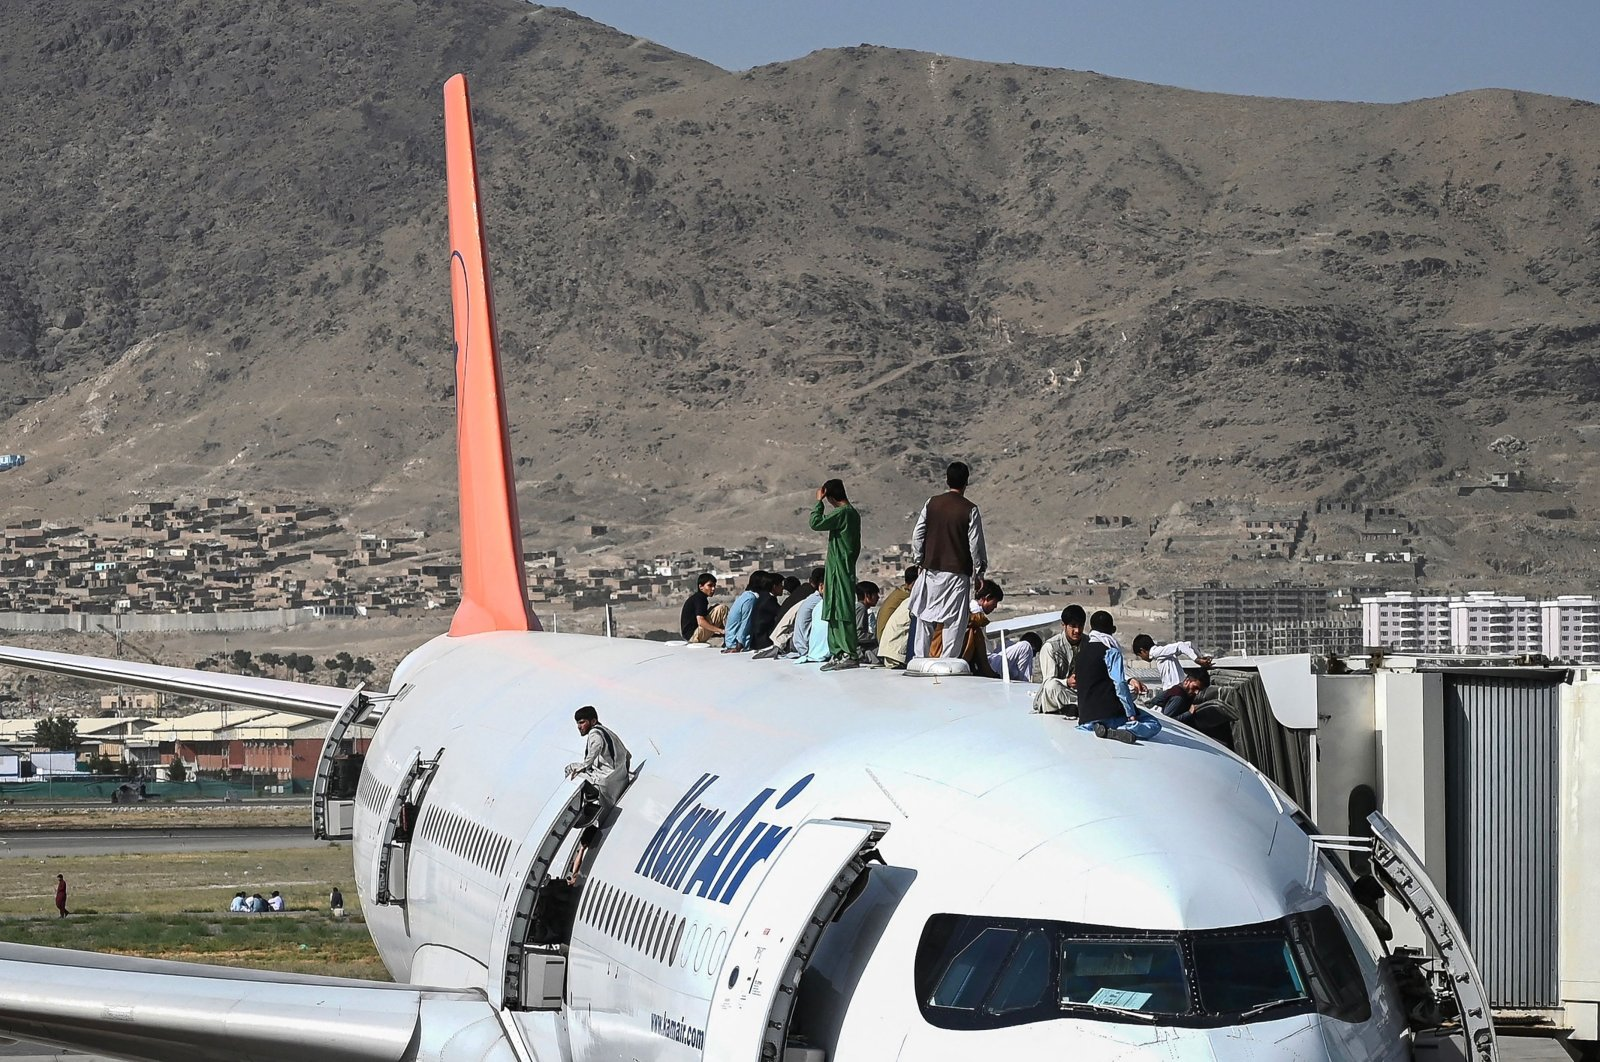 Afghan people climb atop a plane as they wait at Kabul Hamid Karzai International Airport in Kabul, Afghanistan, Aug.16, 2021. (AFP Photo)